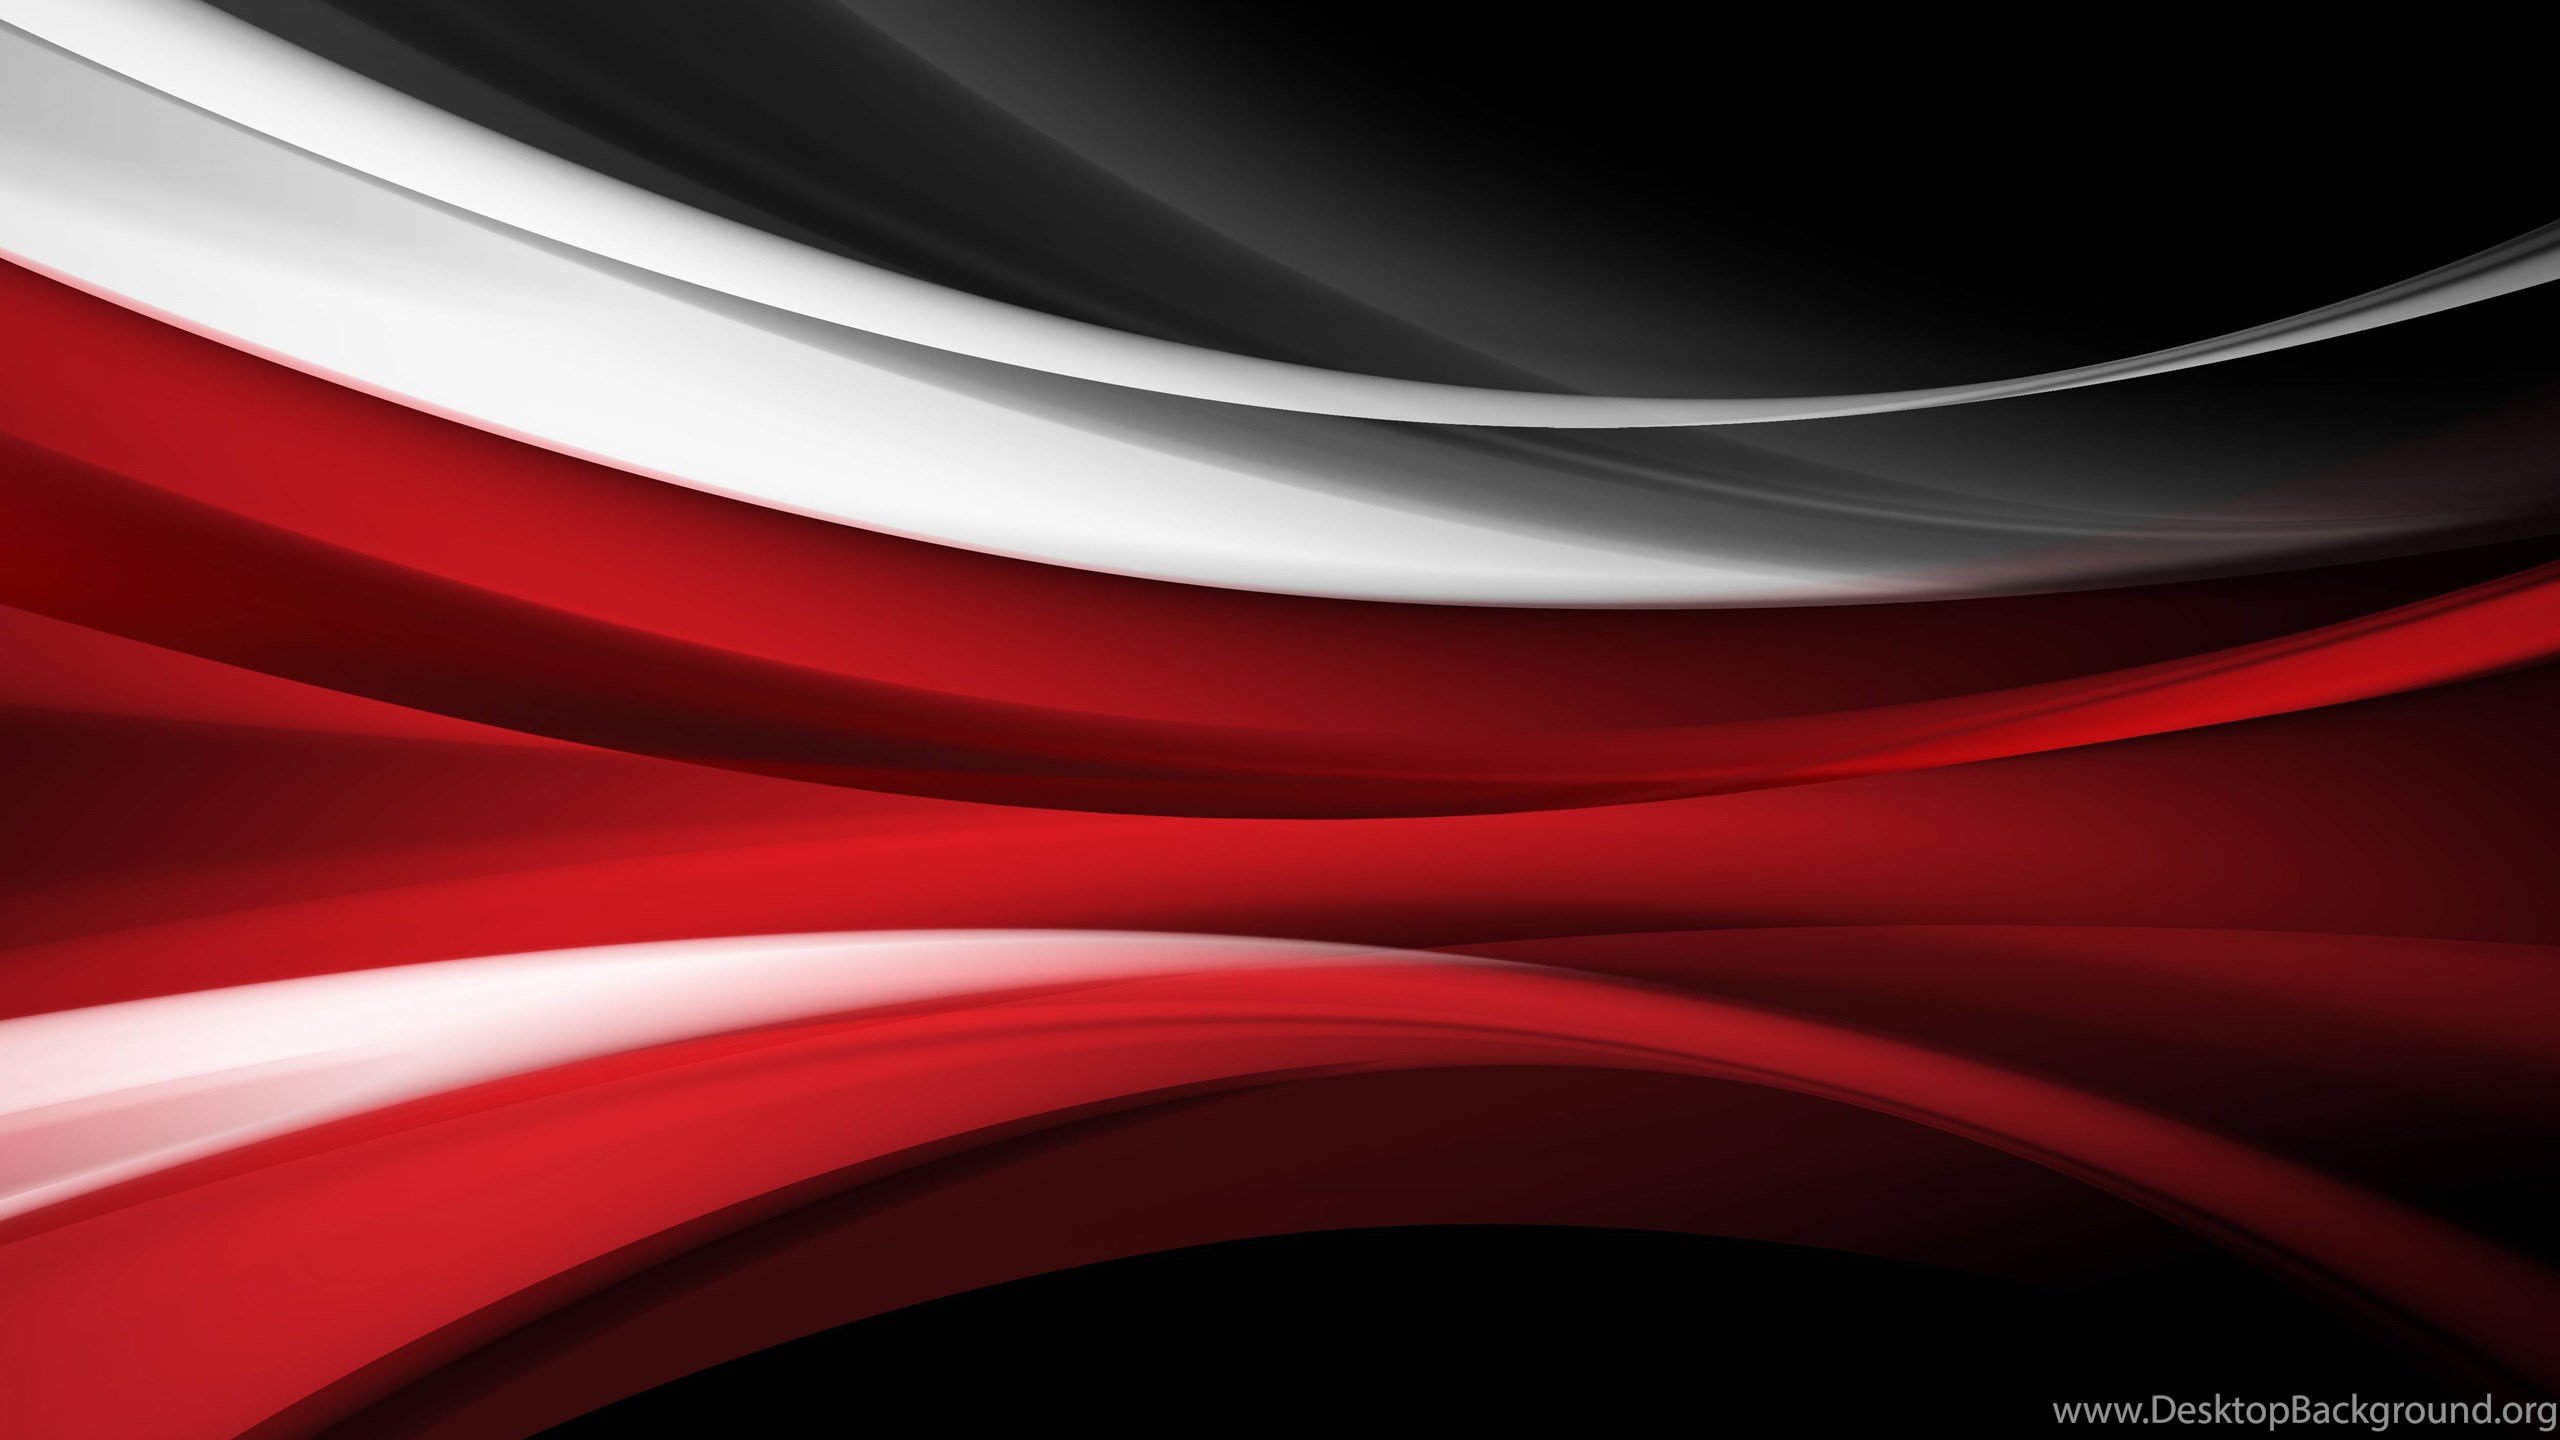 Red And Black Abstract Backgrounds Desktop Background